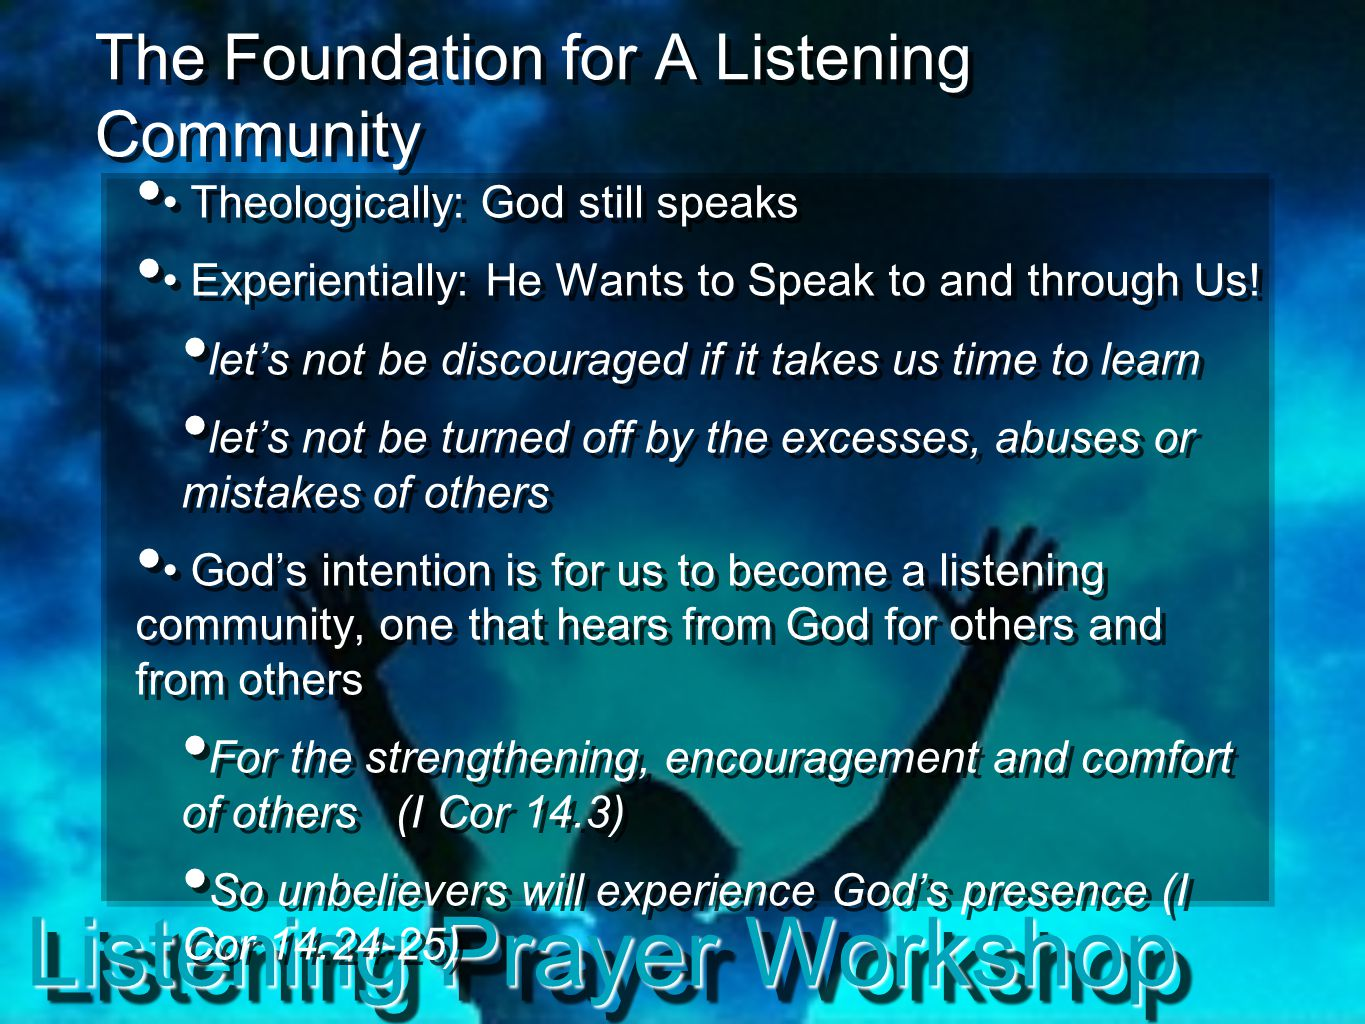 Listening Prayer Workshop The Foundation for A Listening Community Theologically: God still speaks Experientially: He Wants to Speak to and through Us